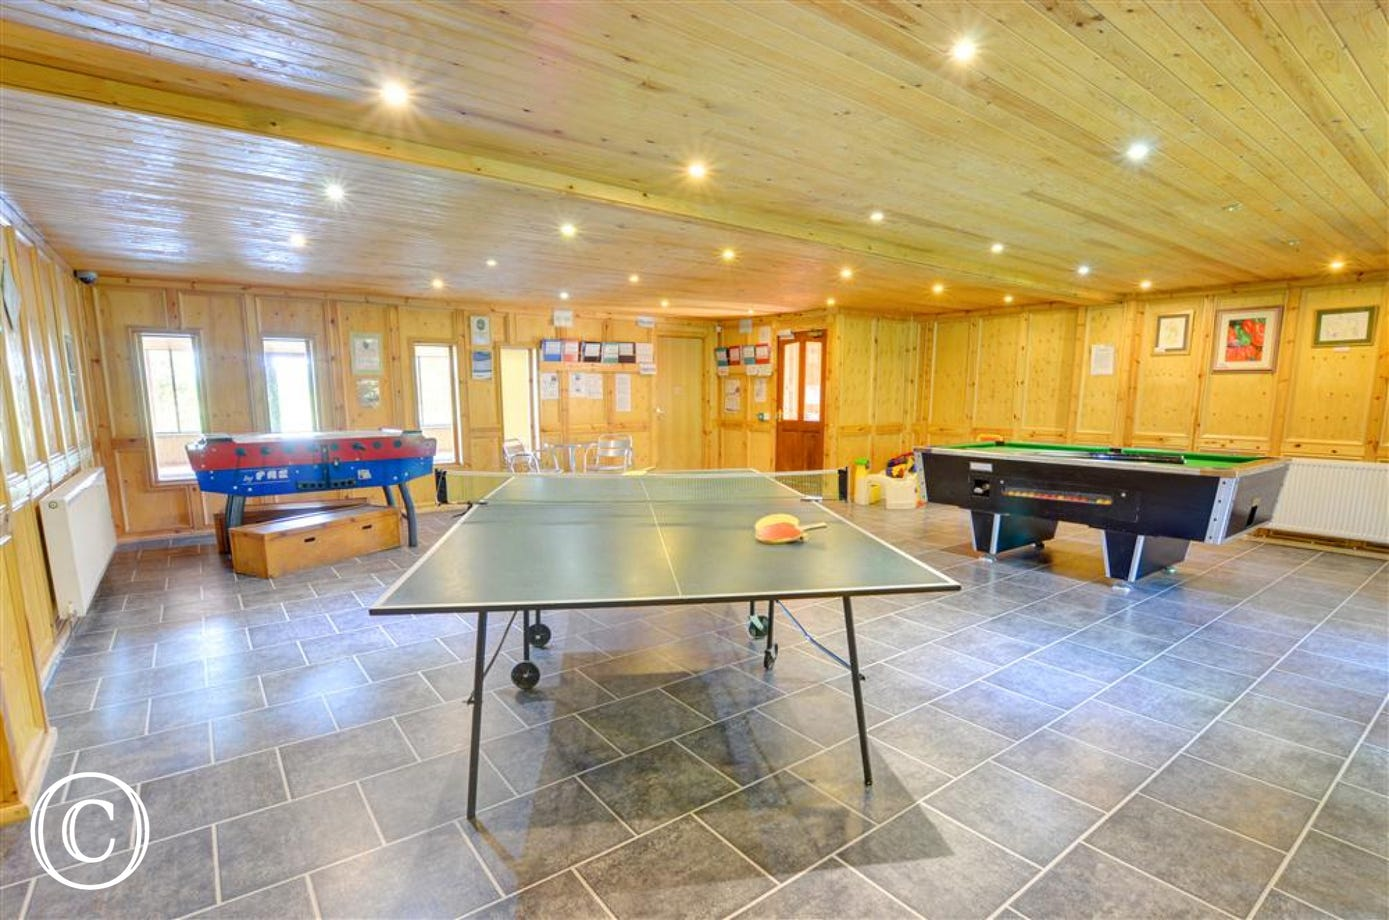 Large bright and airy games room.